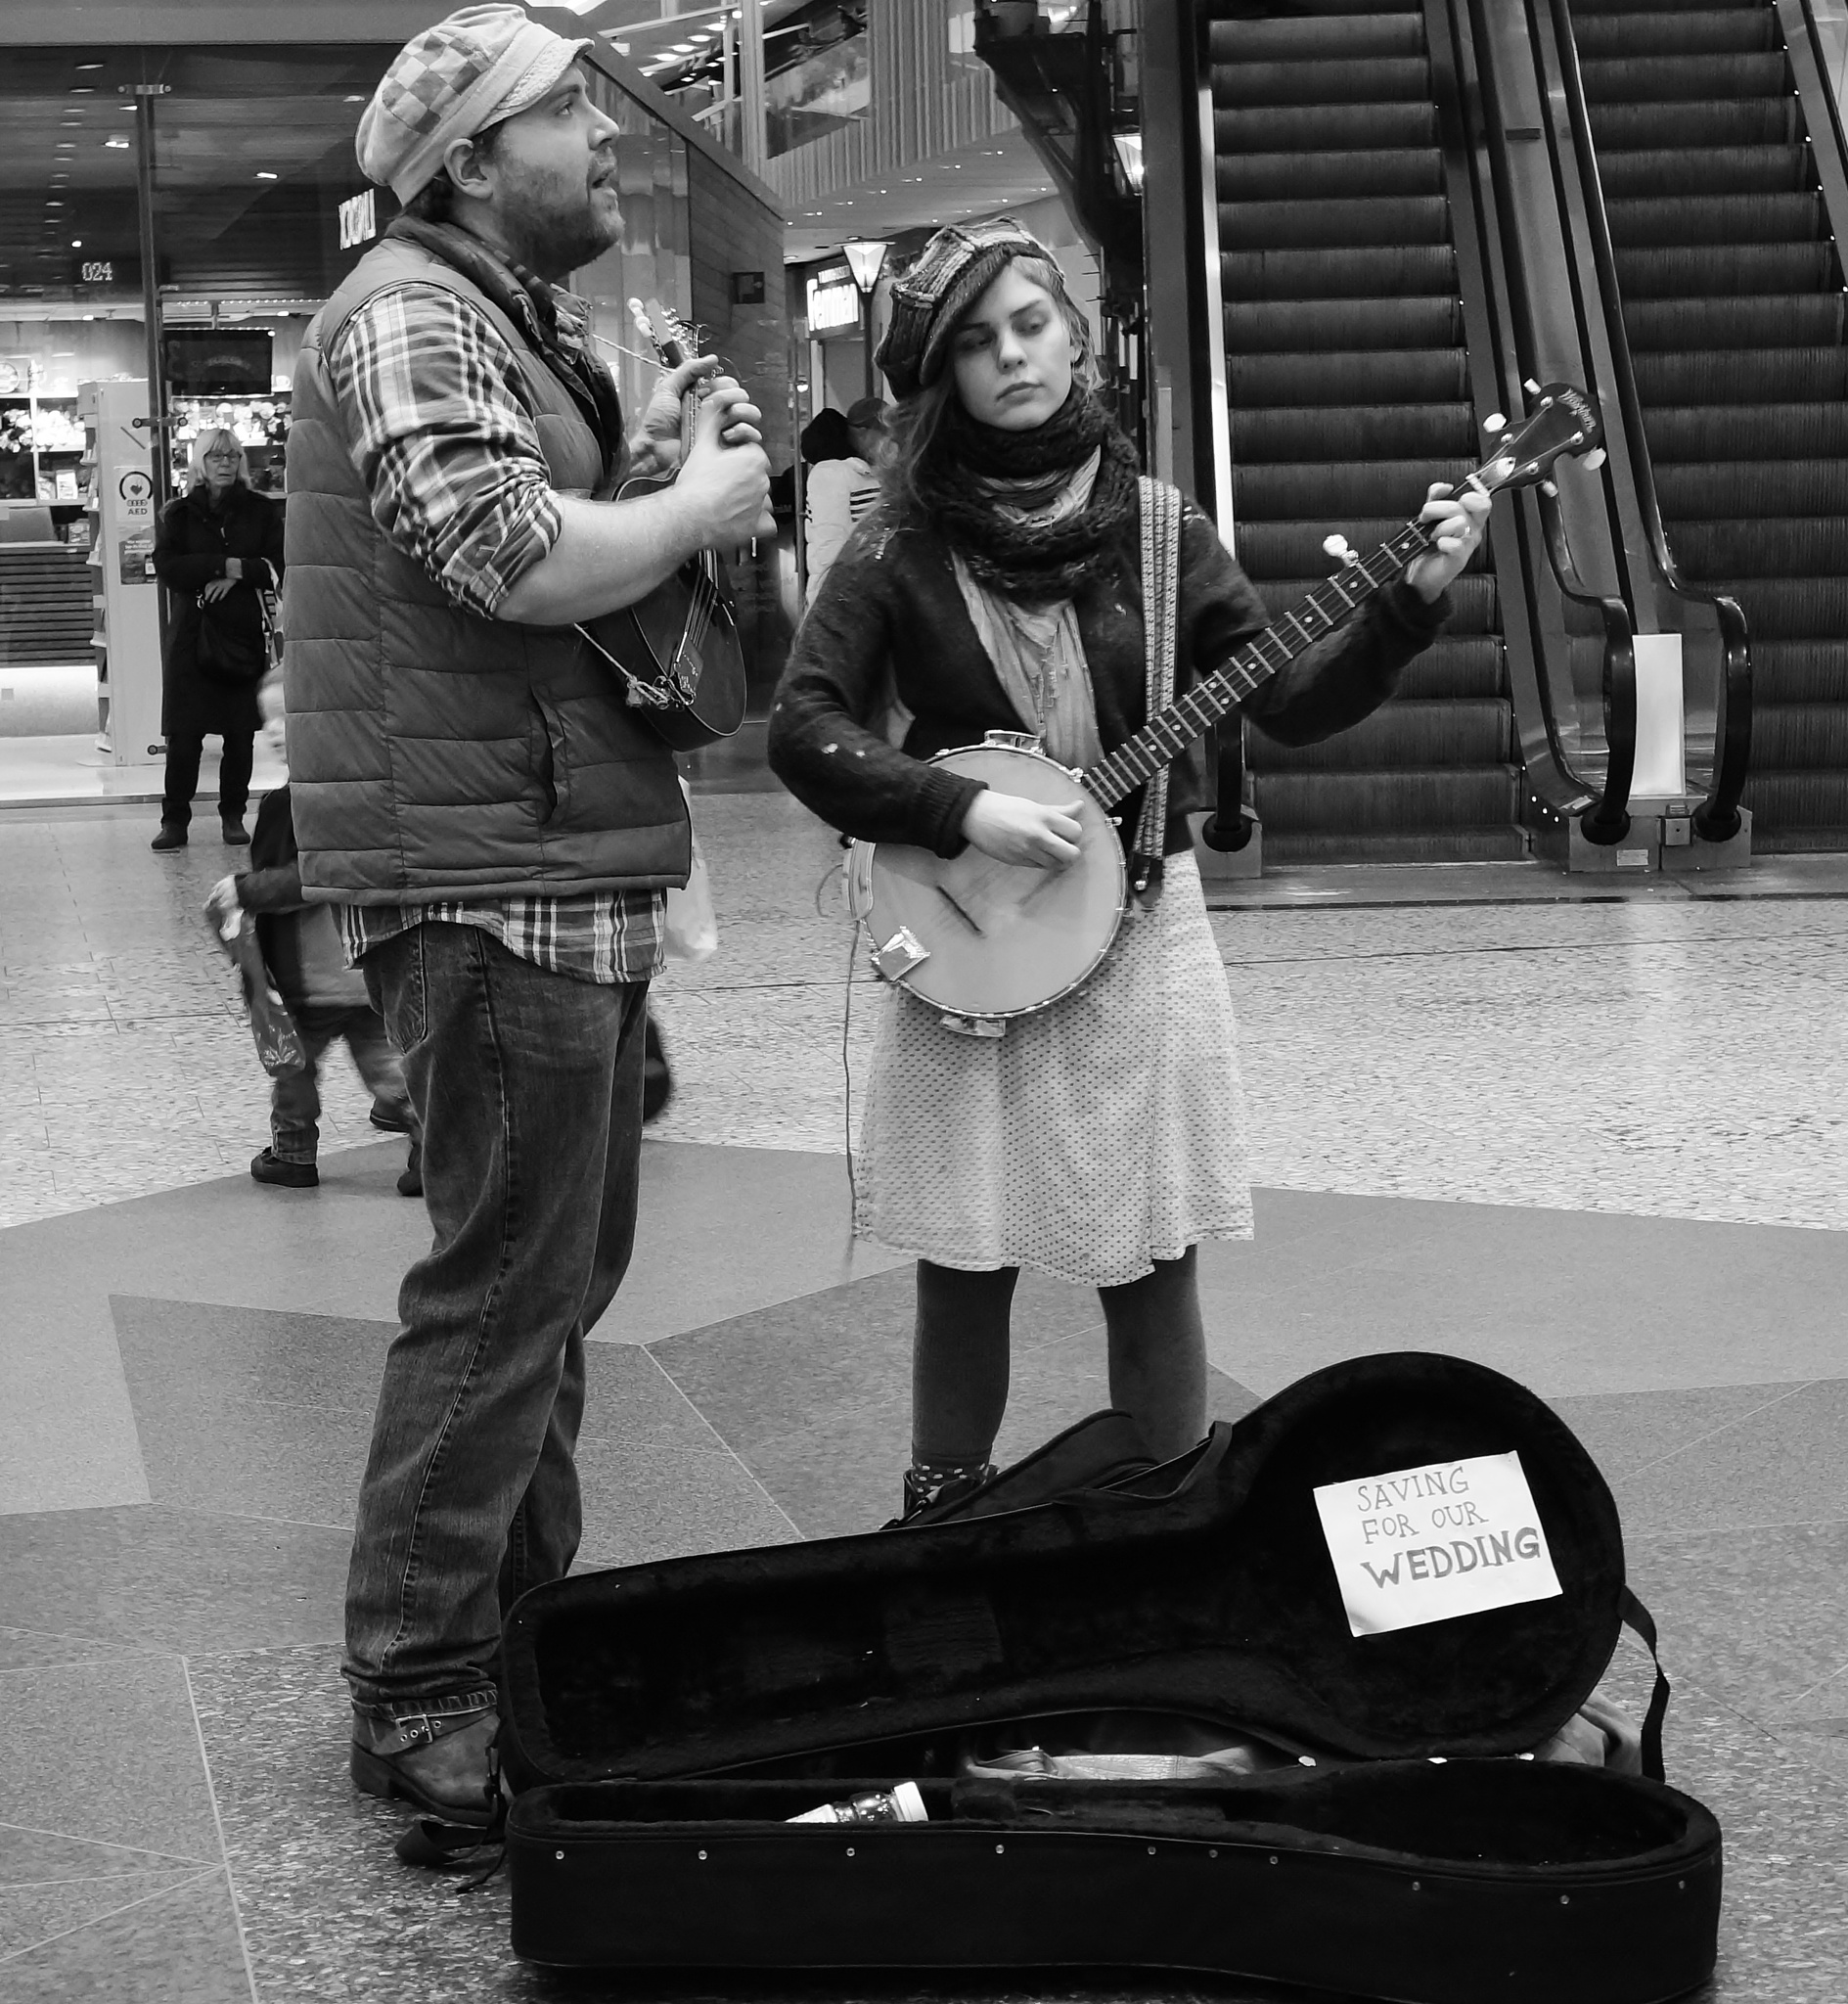 "Street musicians - ""saving for their wedding"" - in B/W by rolf persson"